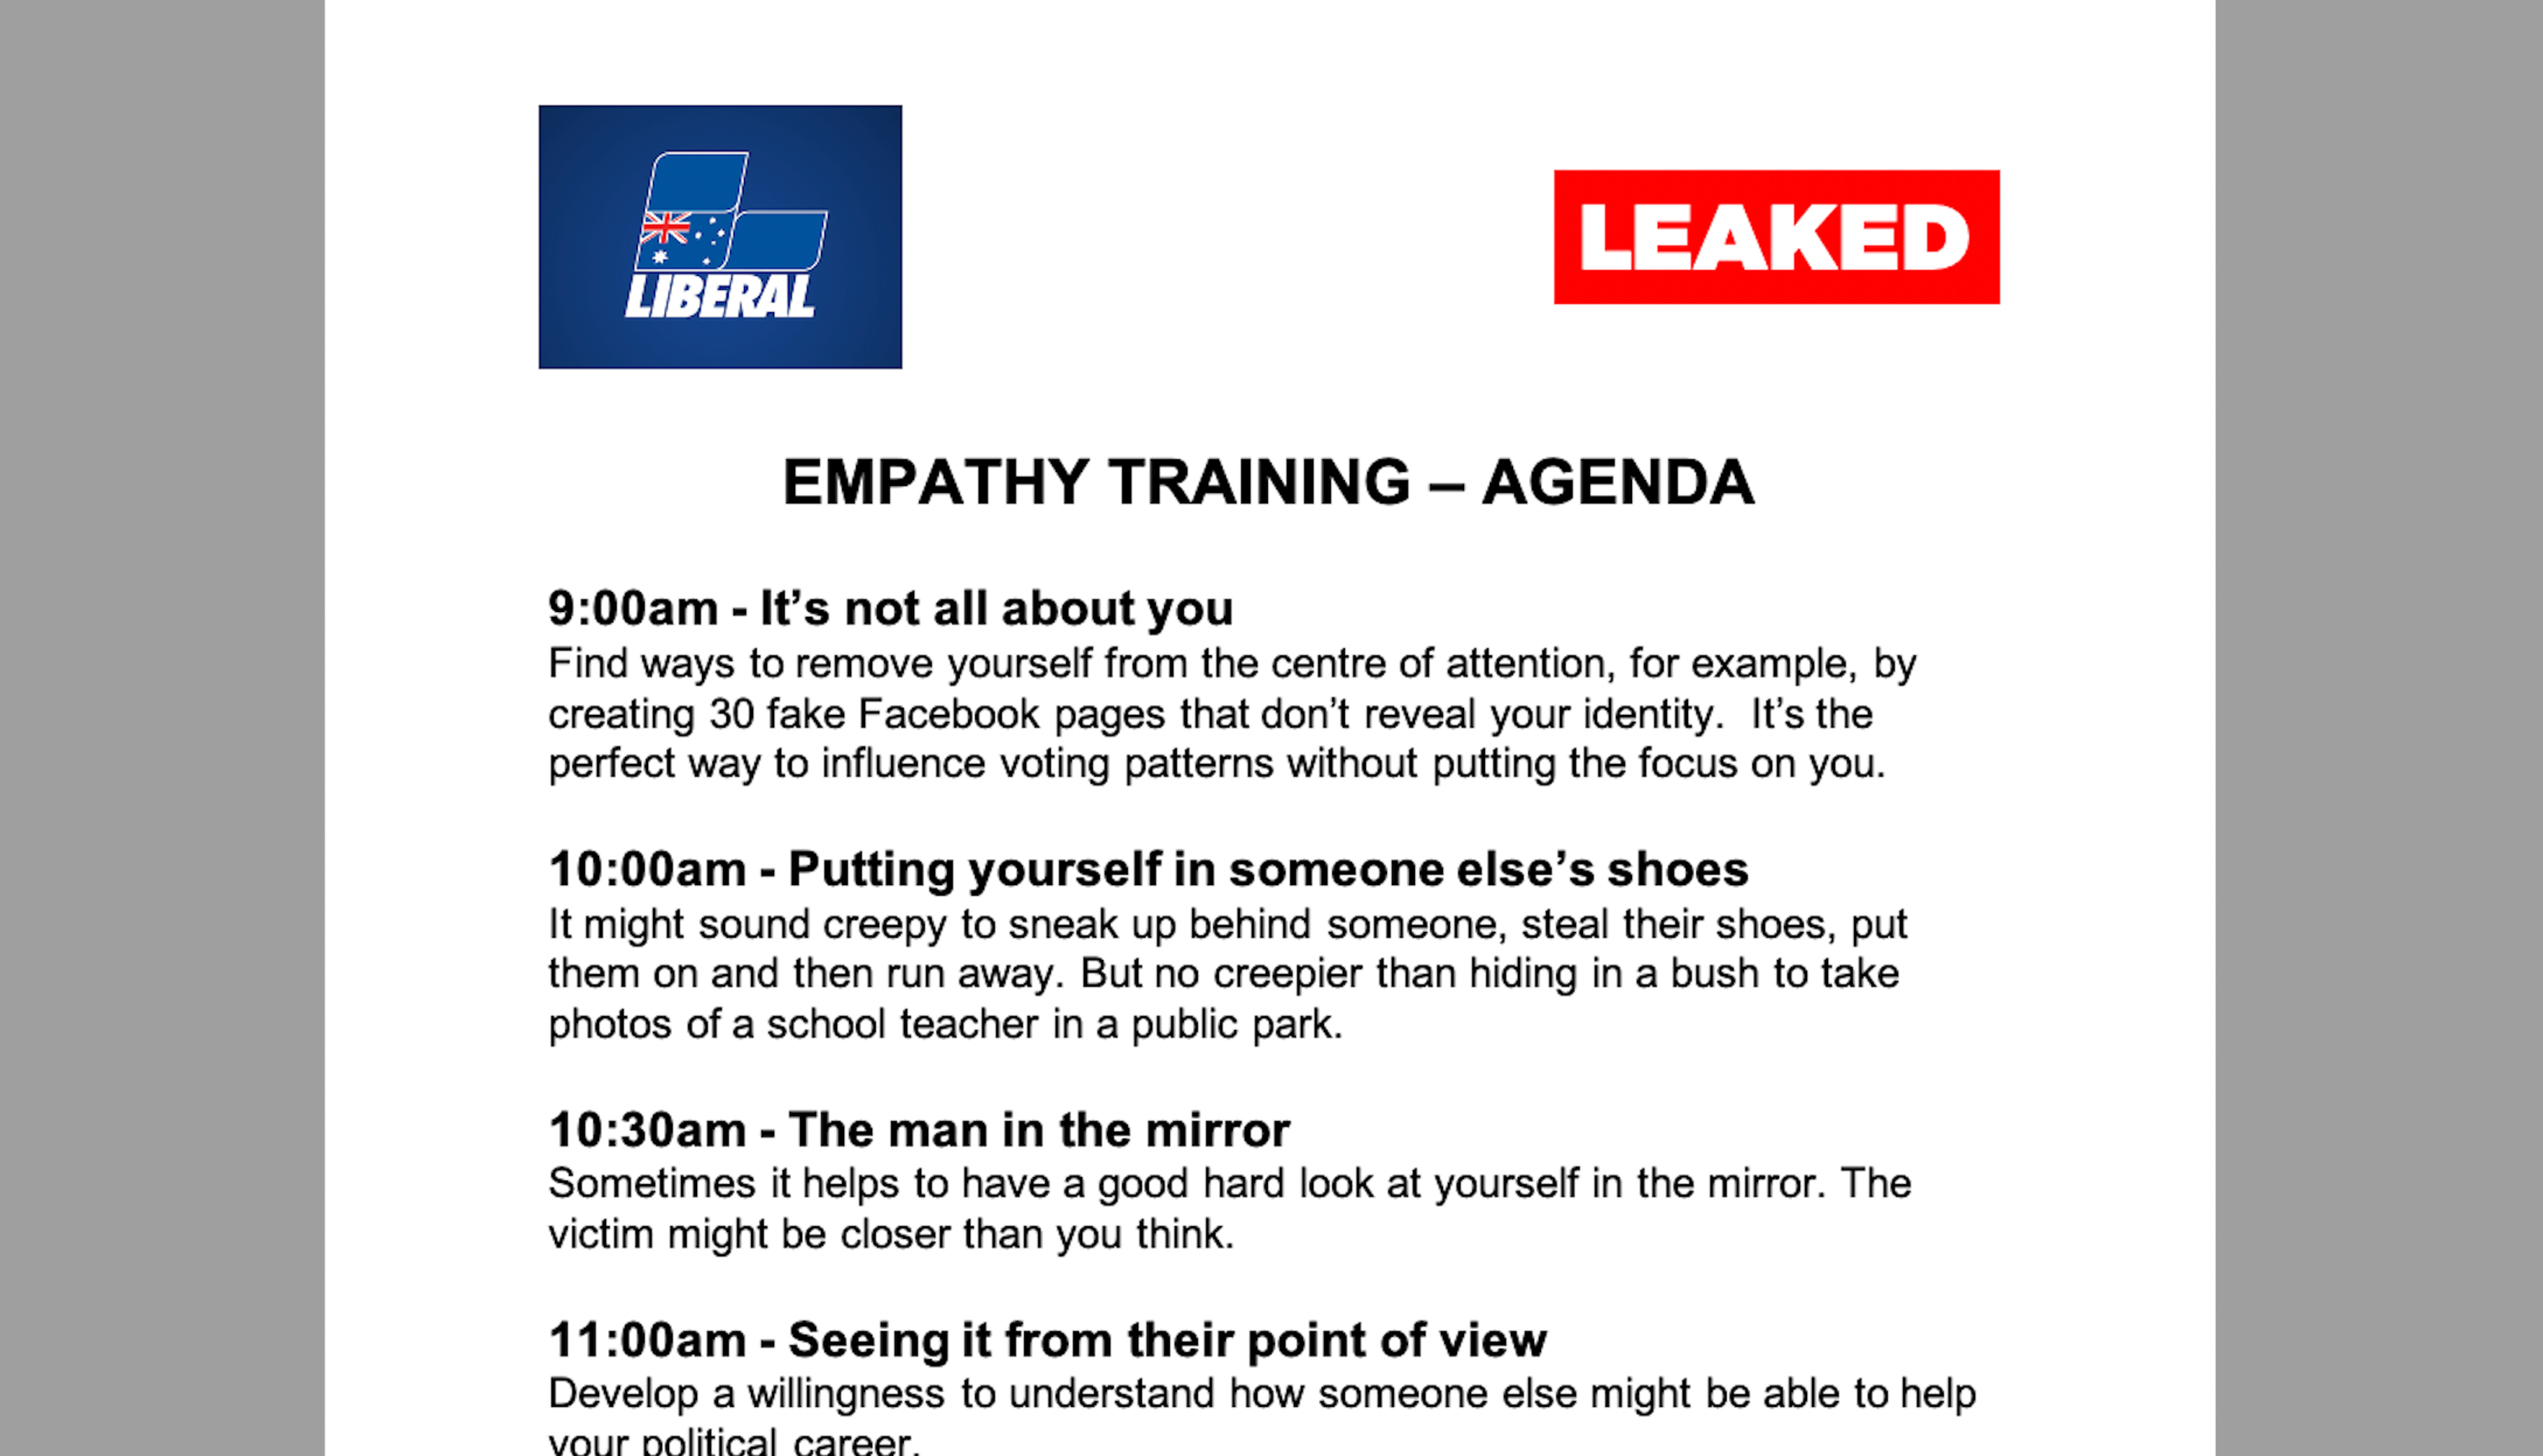 We've Received A Leaked Copy Of The Liberal Party's Empathy Training Program